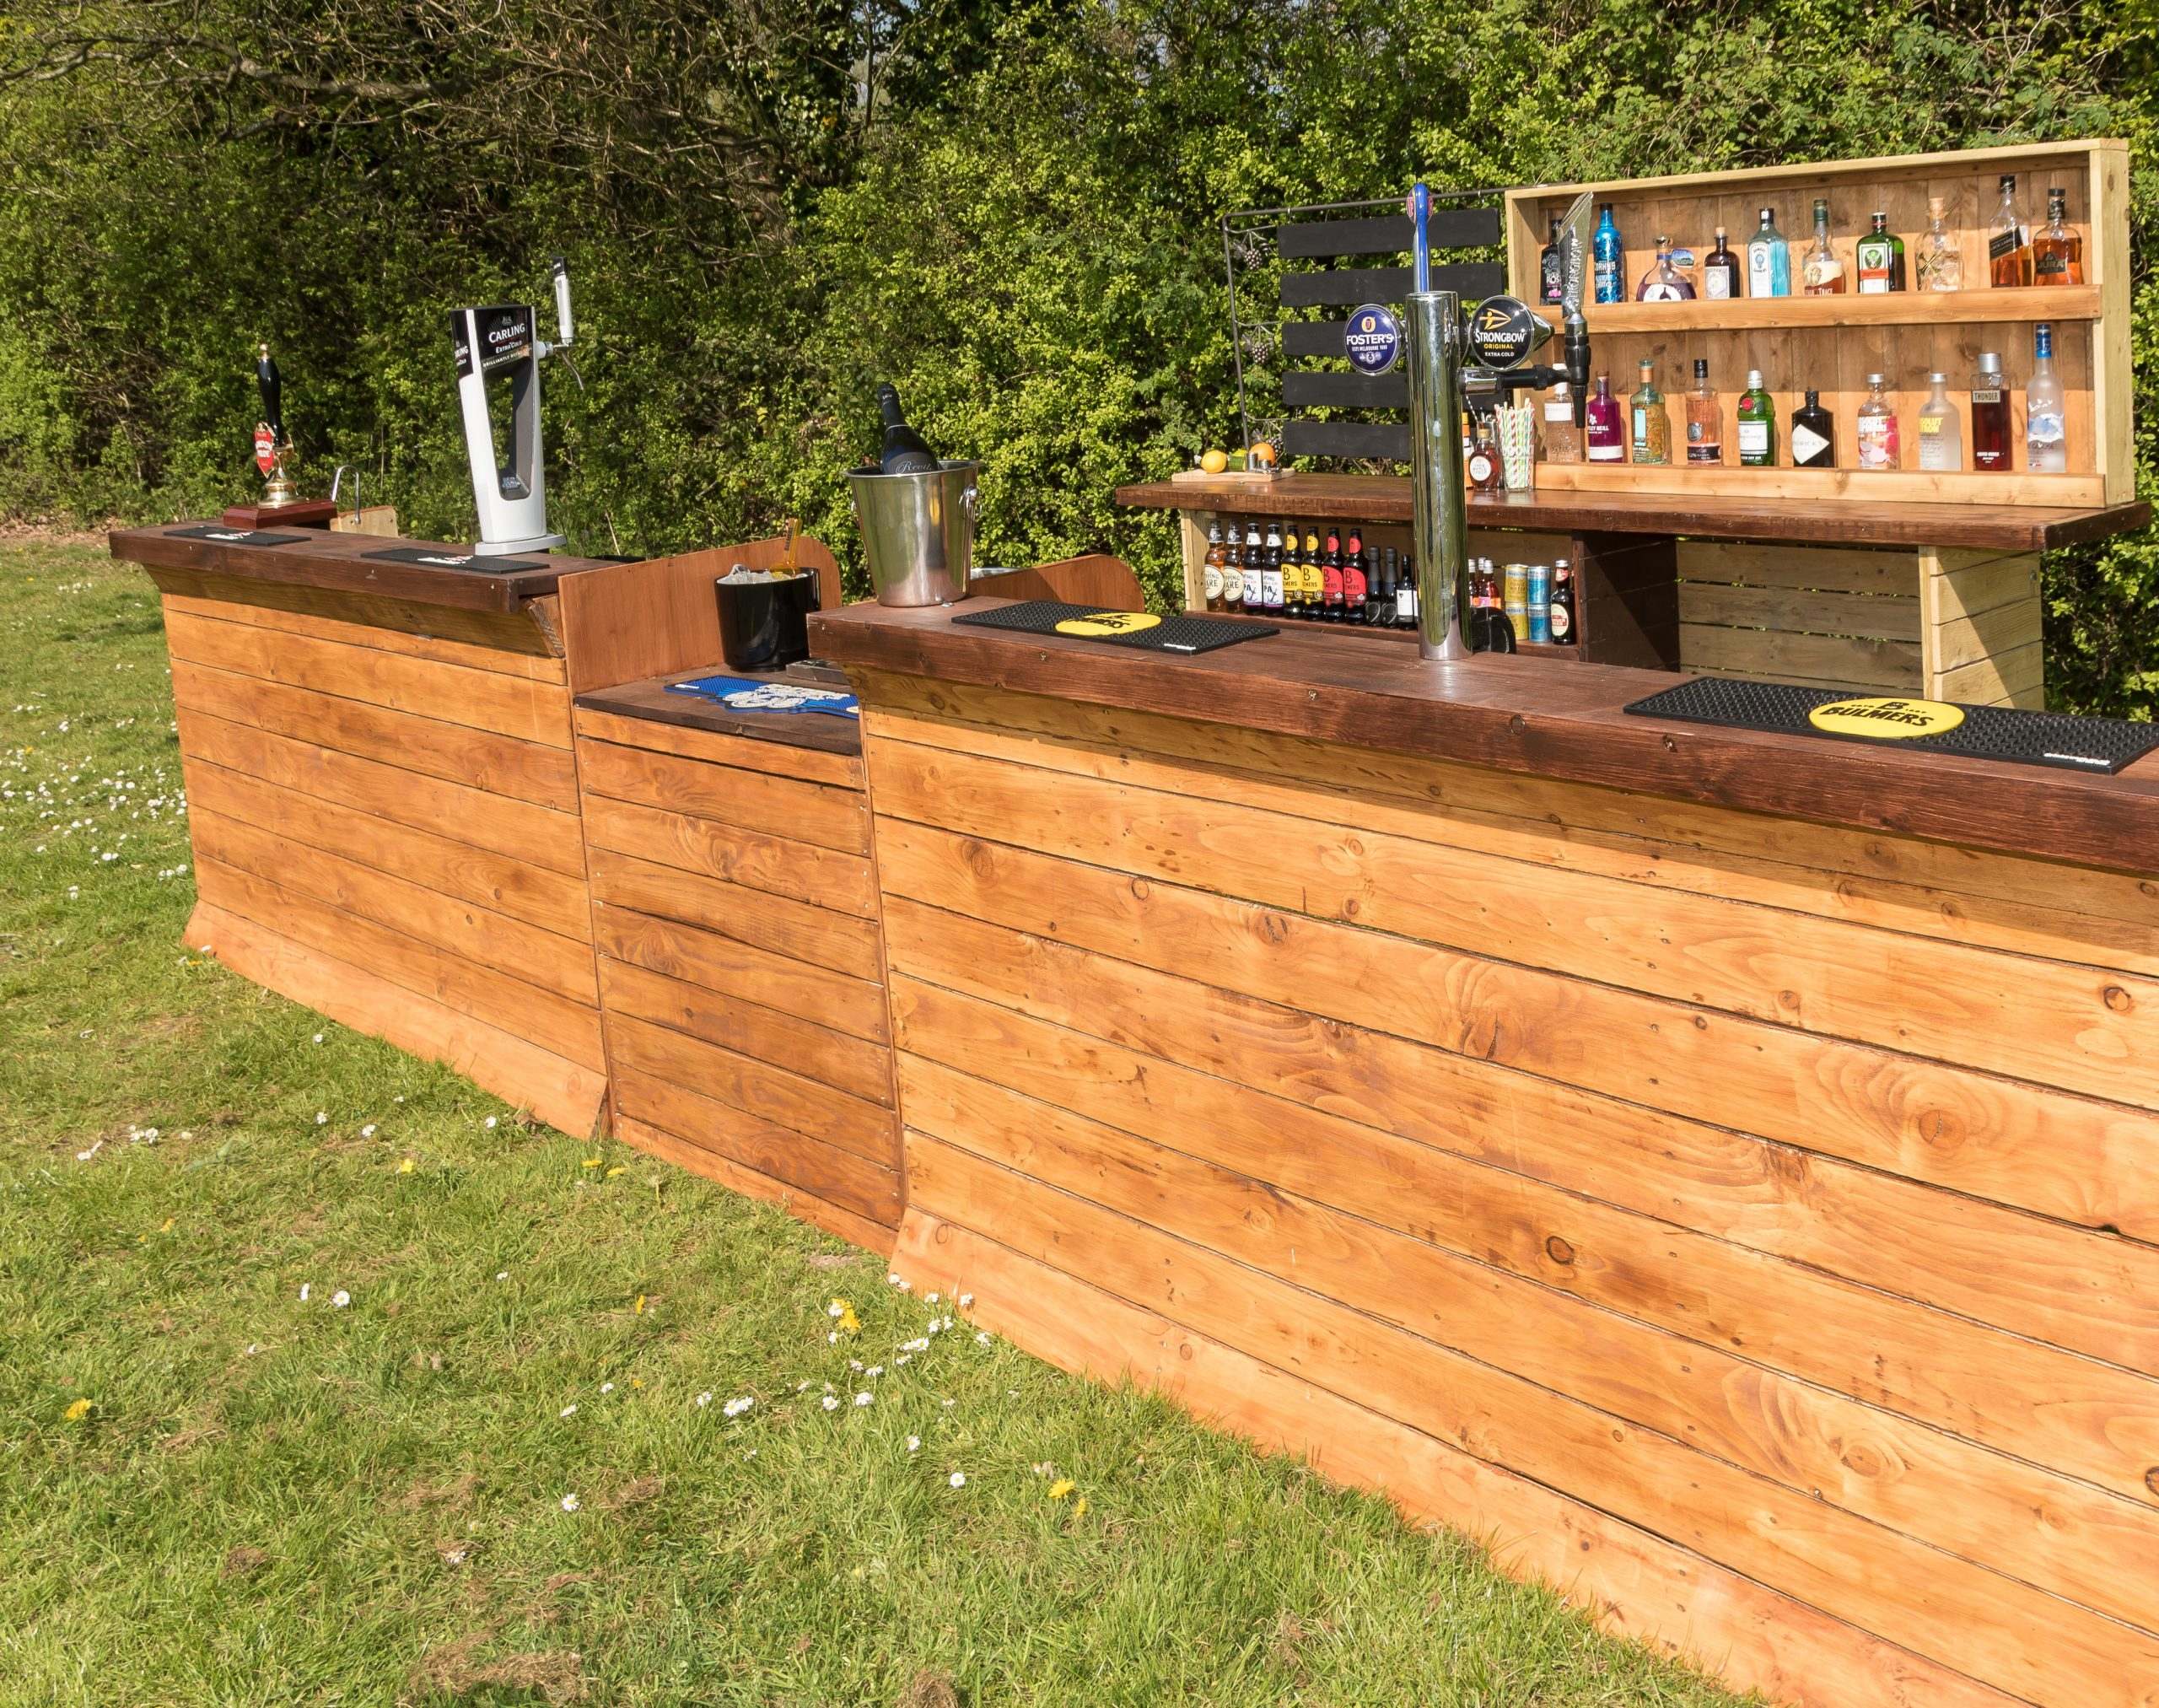 Festival bar hire in Surrey